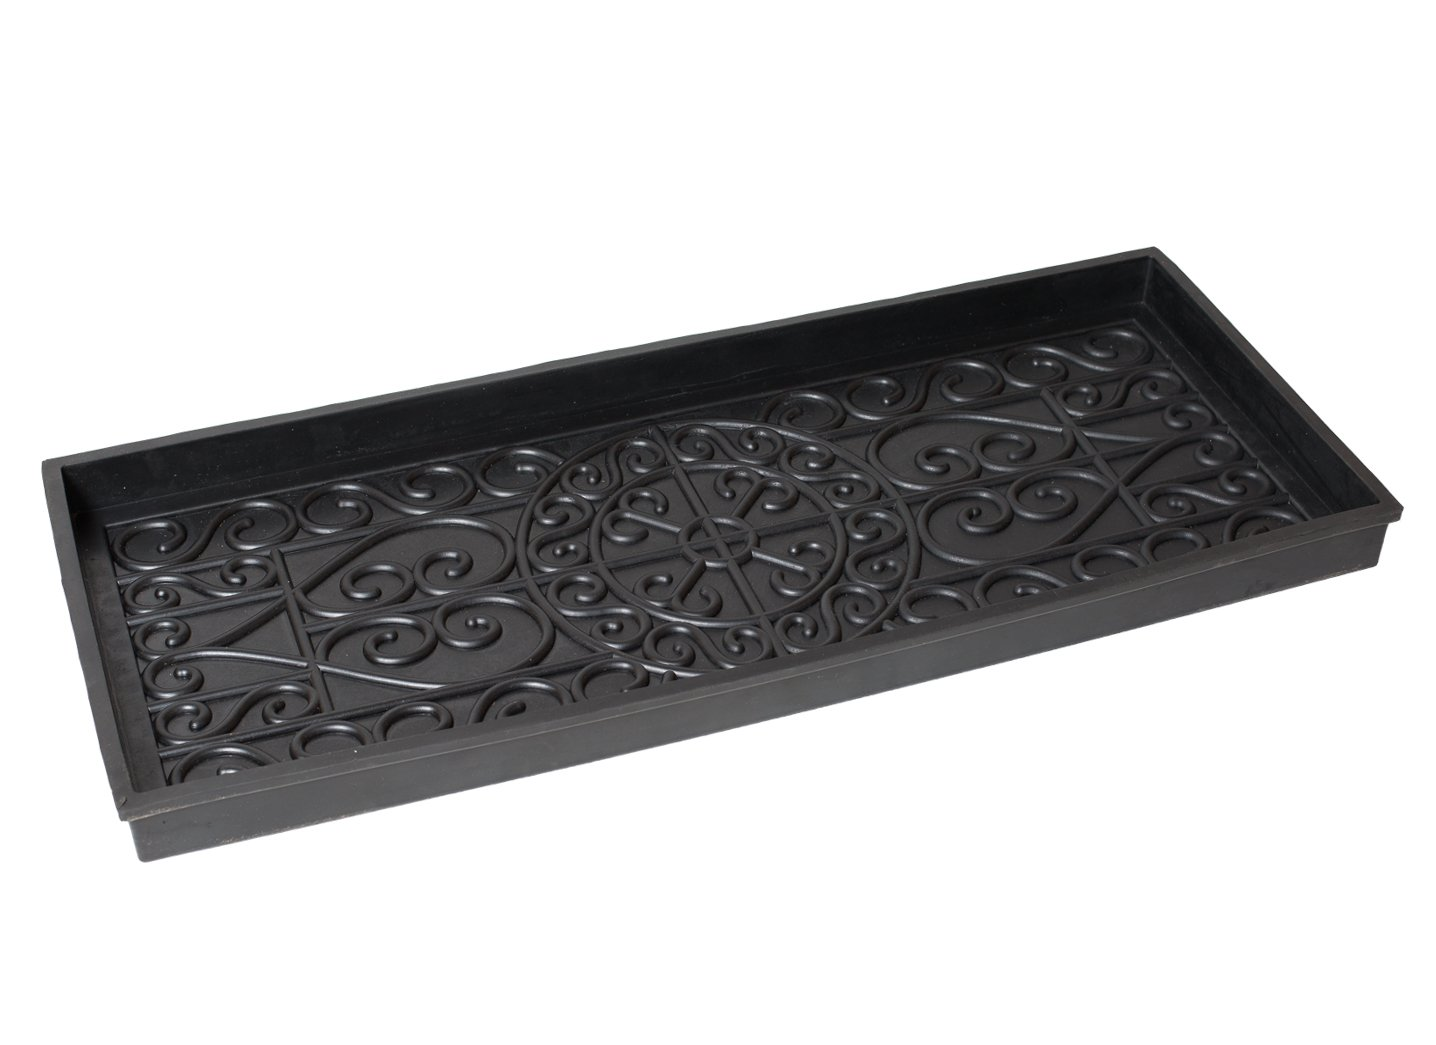 BirdRock Home Rubber Boot Tray - 34 inch Decorative Boot Tray - Waterproof for All Weather Indoor or Outdoor Use - Dog Bowl Tray